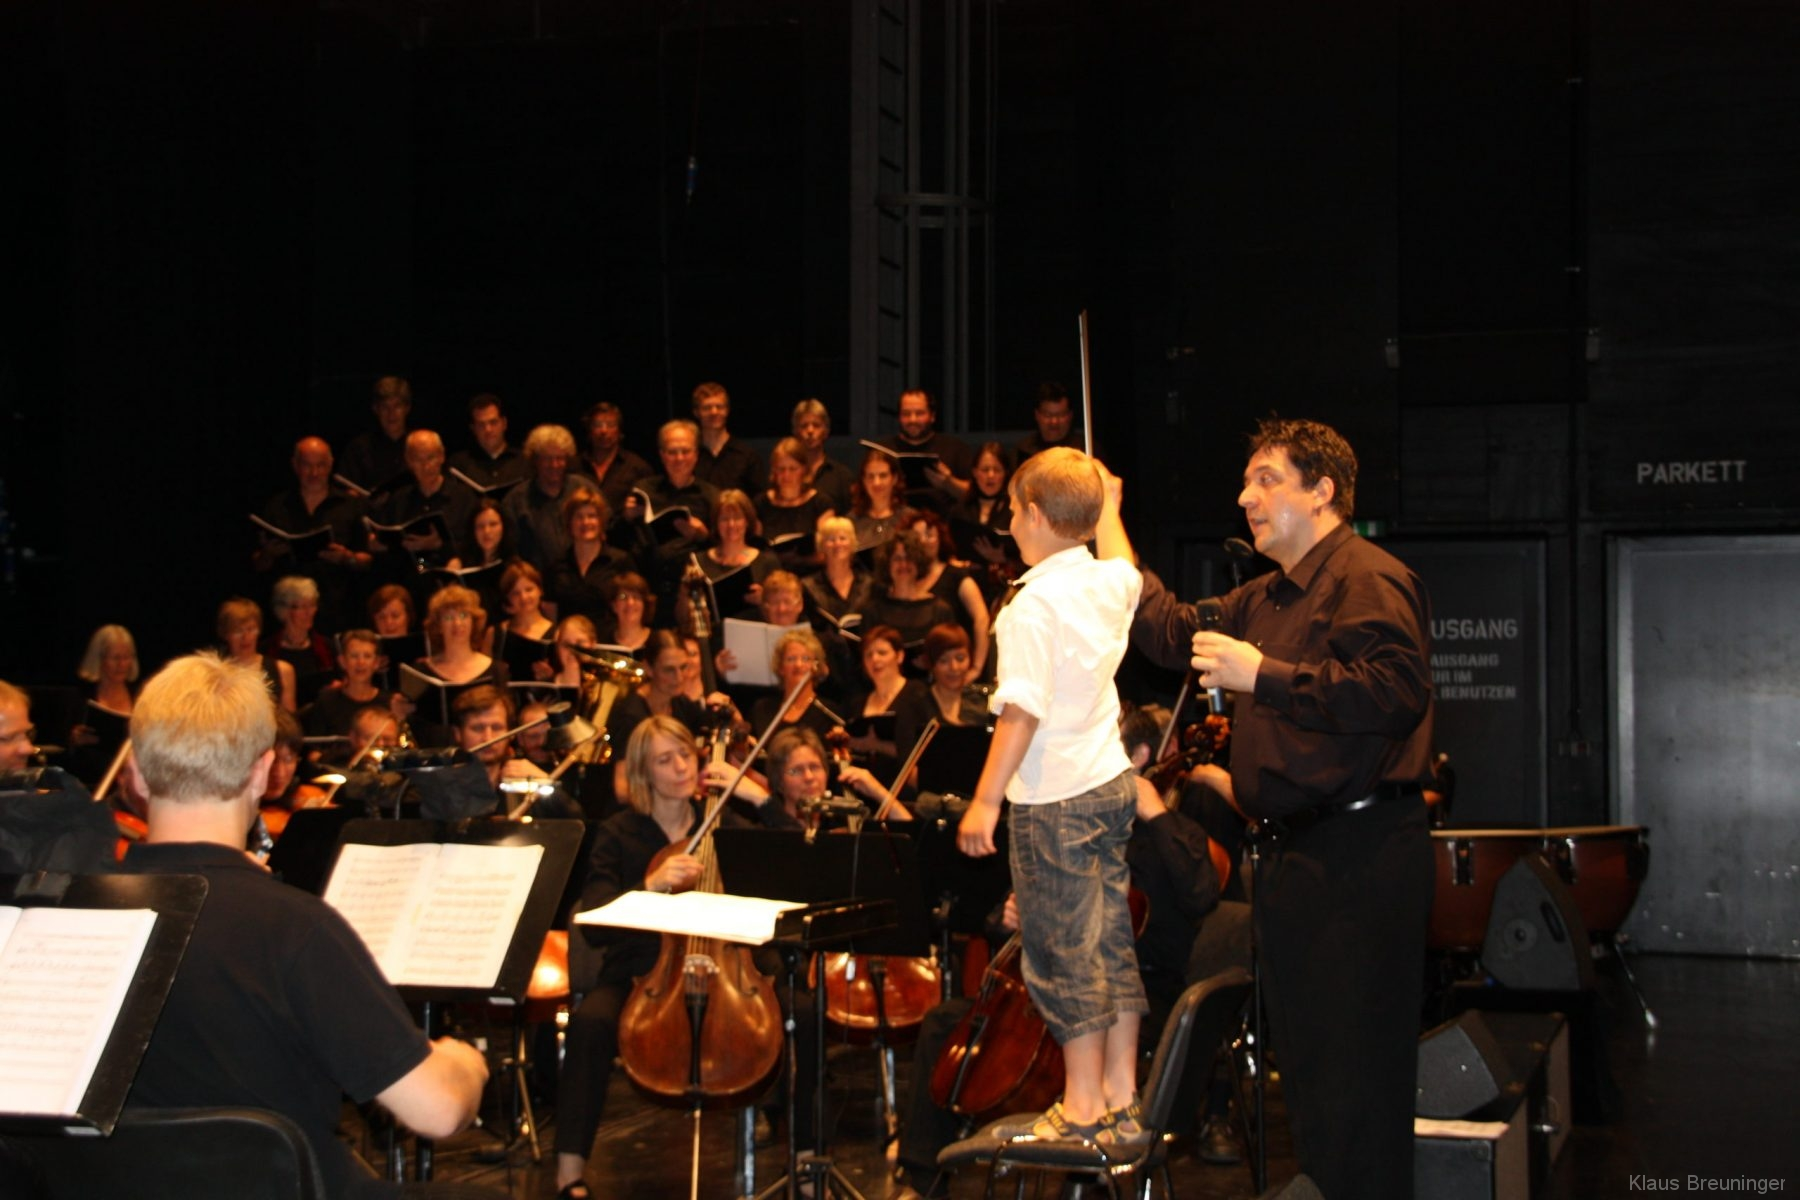 20090625_SoC_DancingInConcert_Kinderkonzert_42-scaled